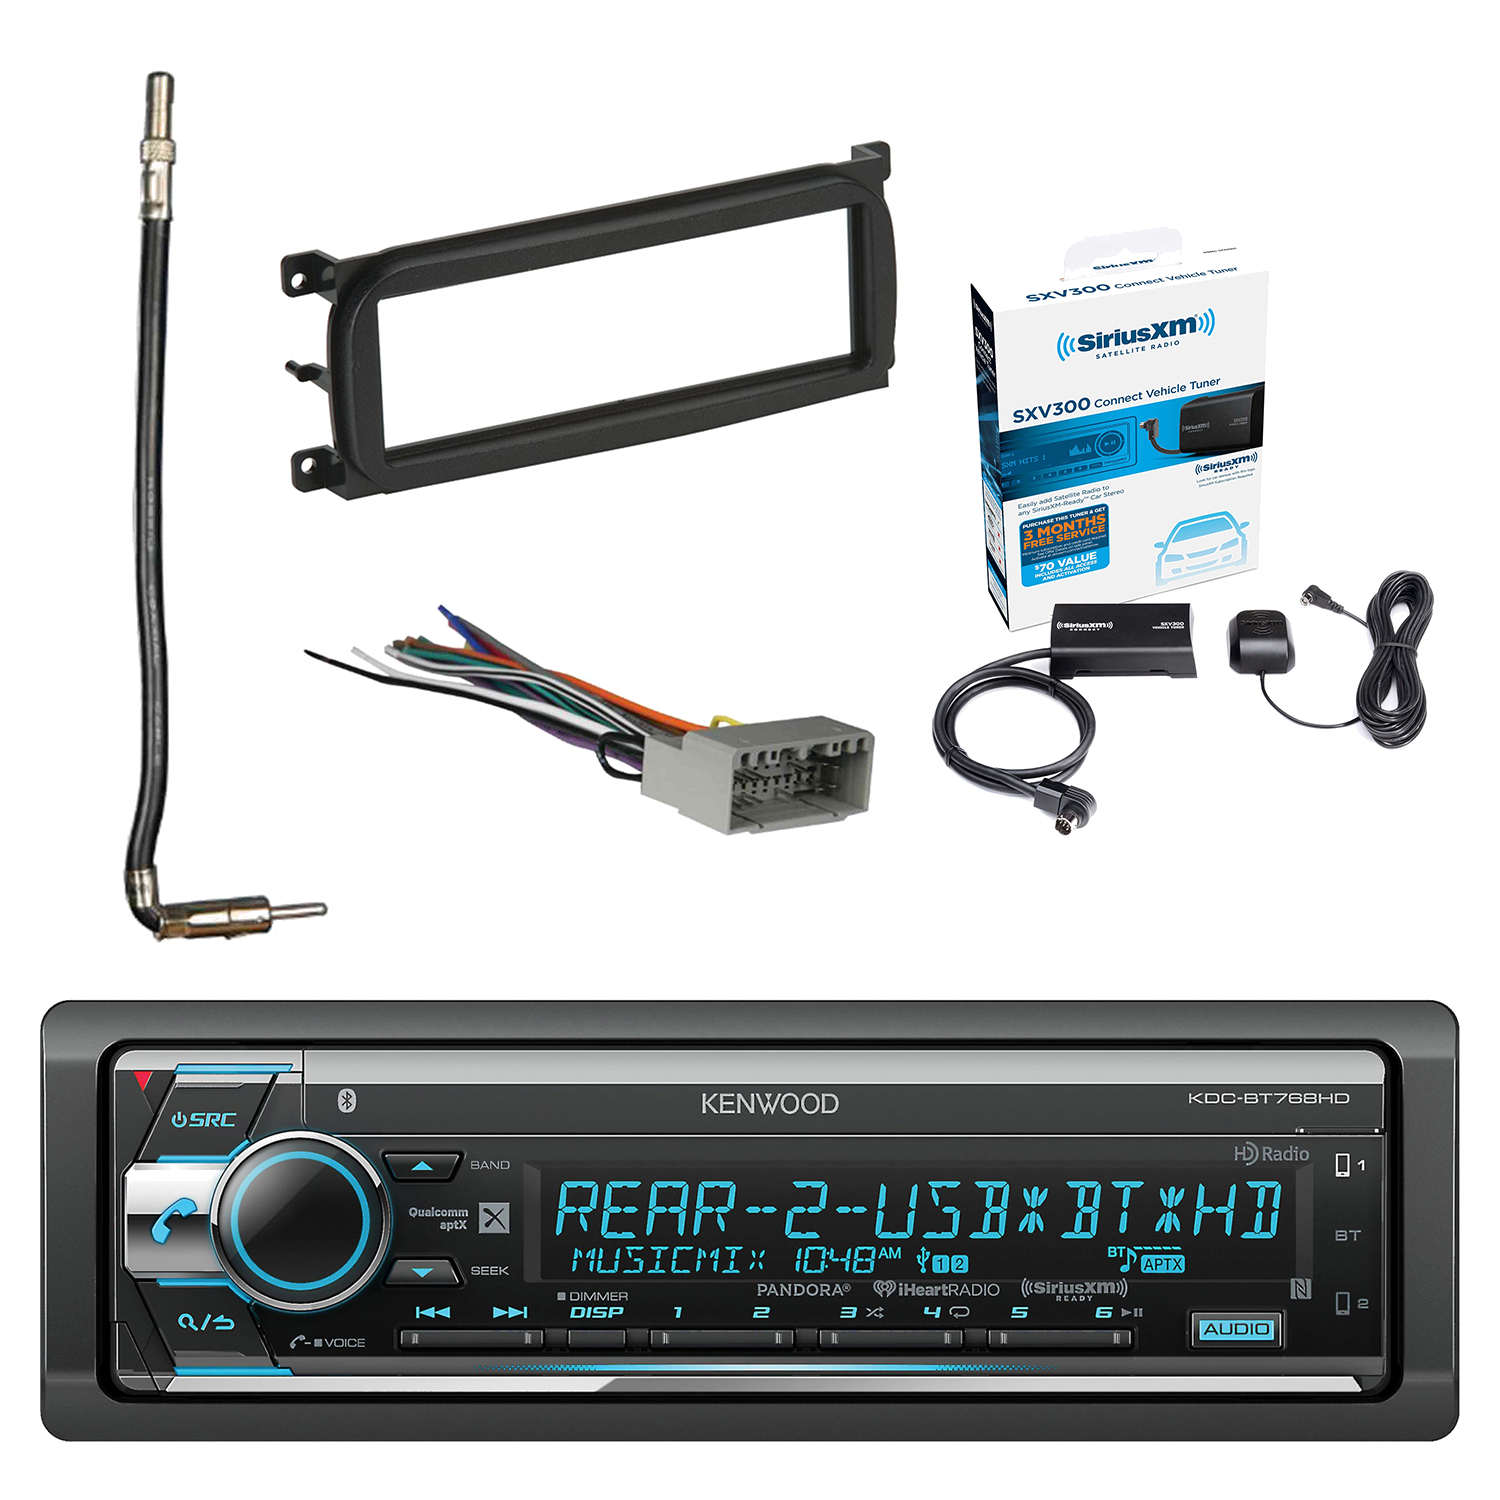 hight resolution of kenwood single din cd am fm car audio receiver w bluetooth with siriusxm satellite radio connect vehicle tuner kit metra dash kit for chry dodge jeep